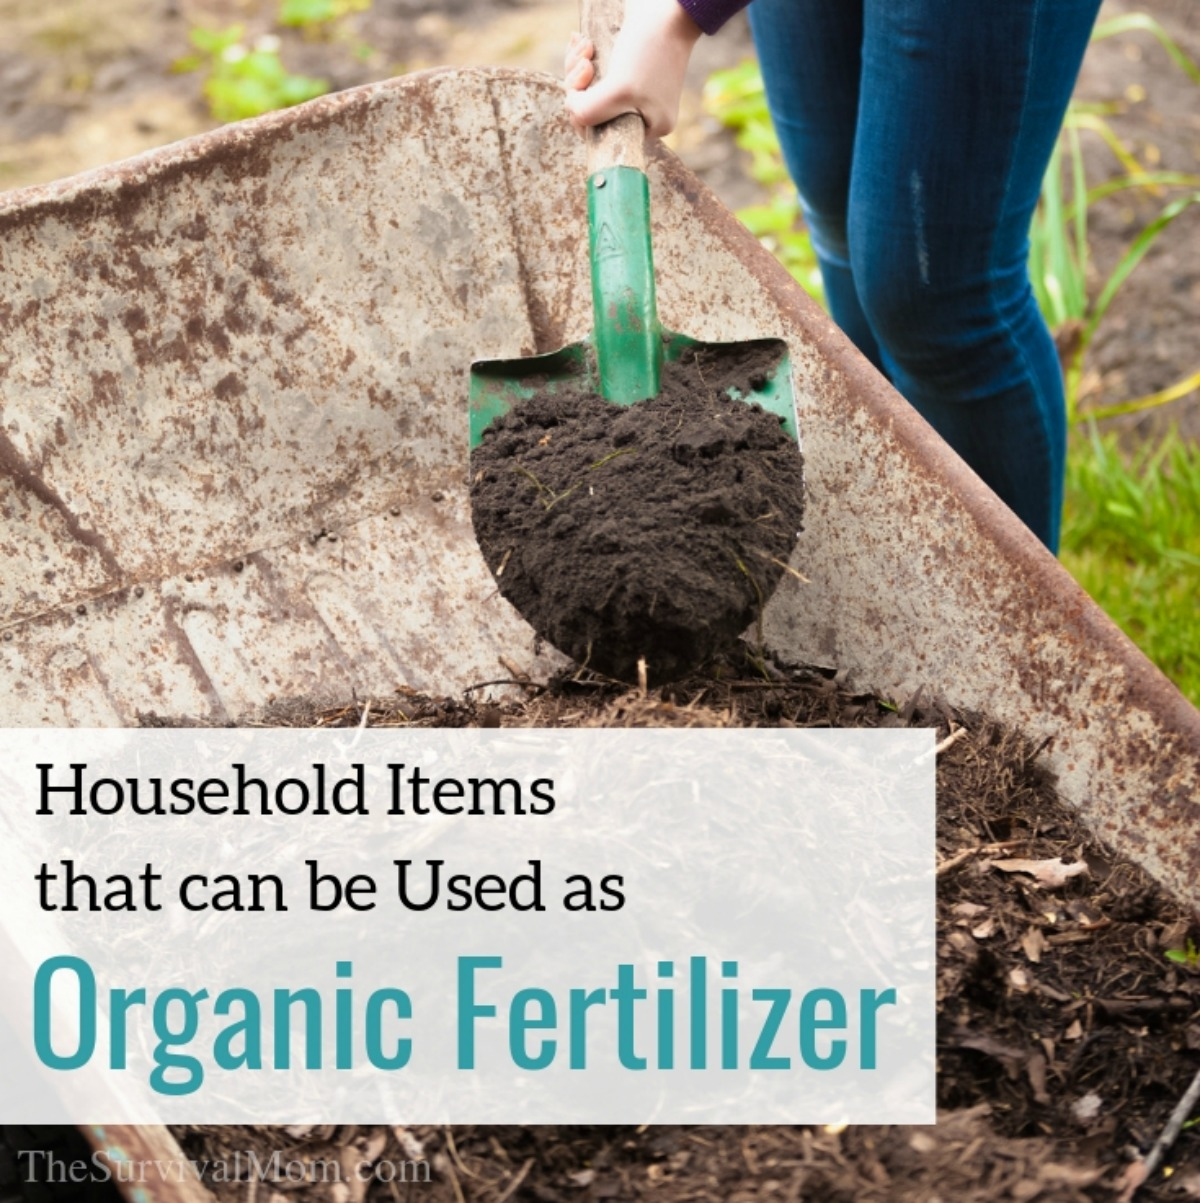 Household Items that can be Used as Organic Fertilizer and plant food